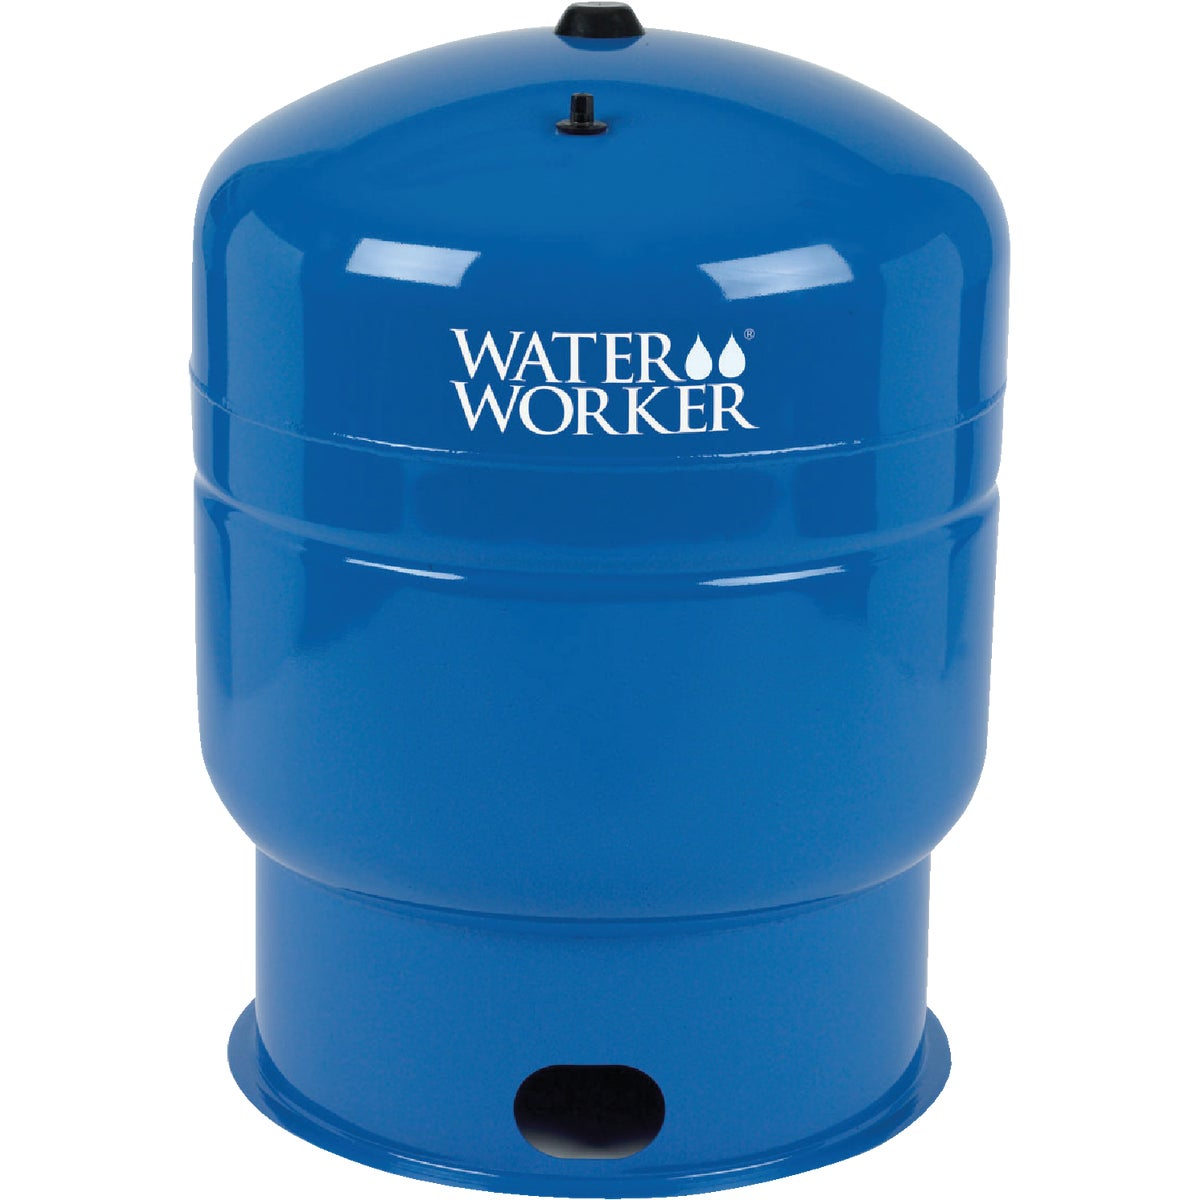 86GAL VERTICAL WELL TANK - HT-86B by Water Worker